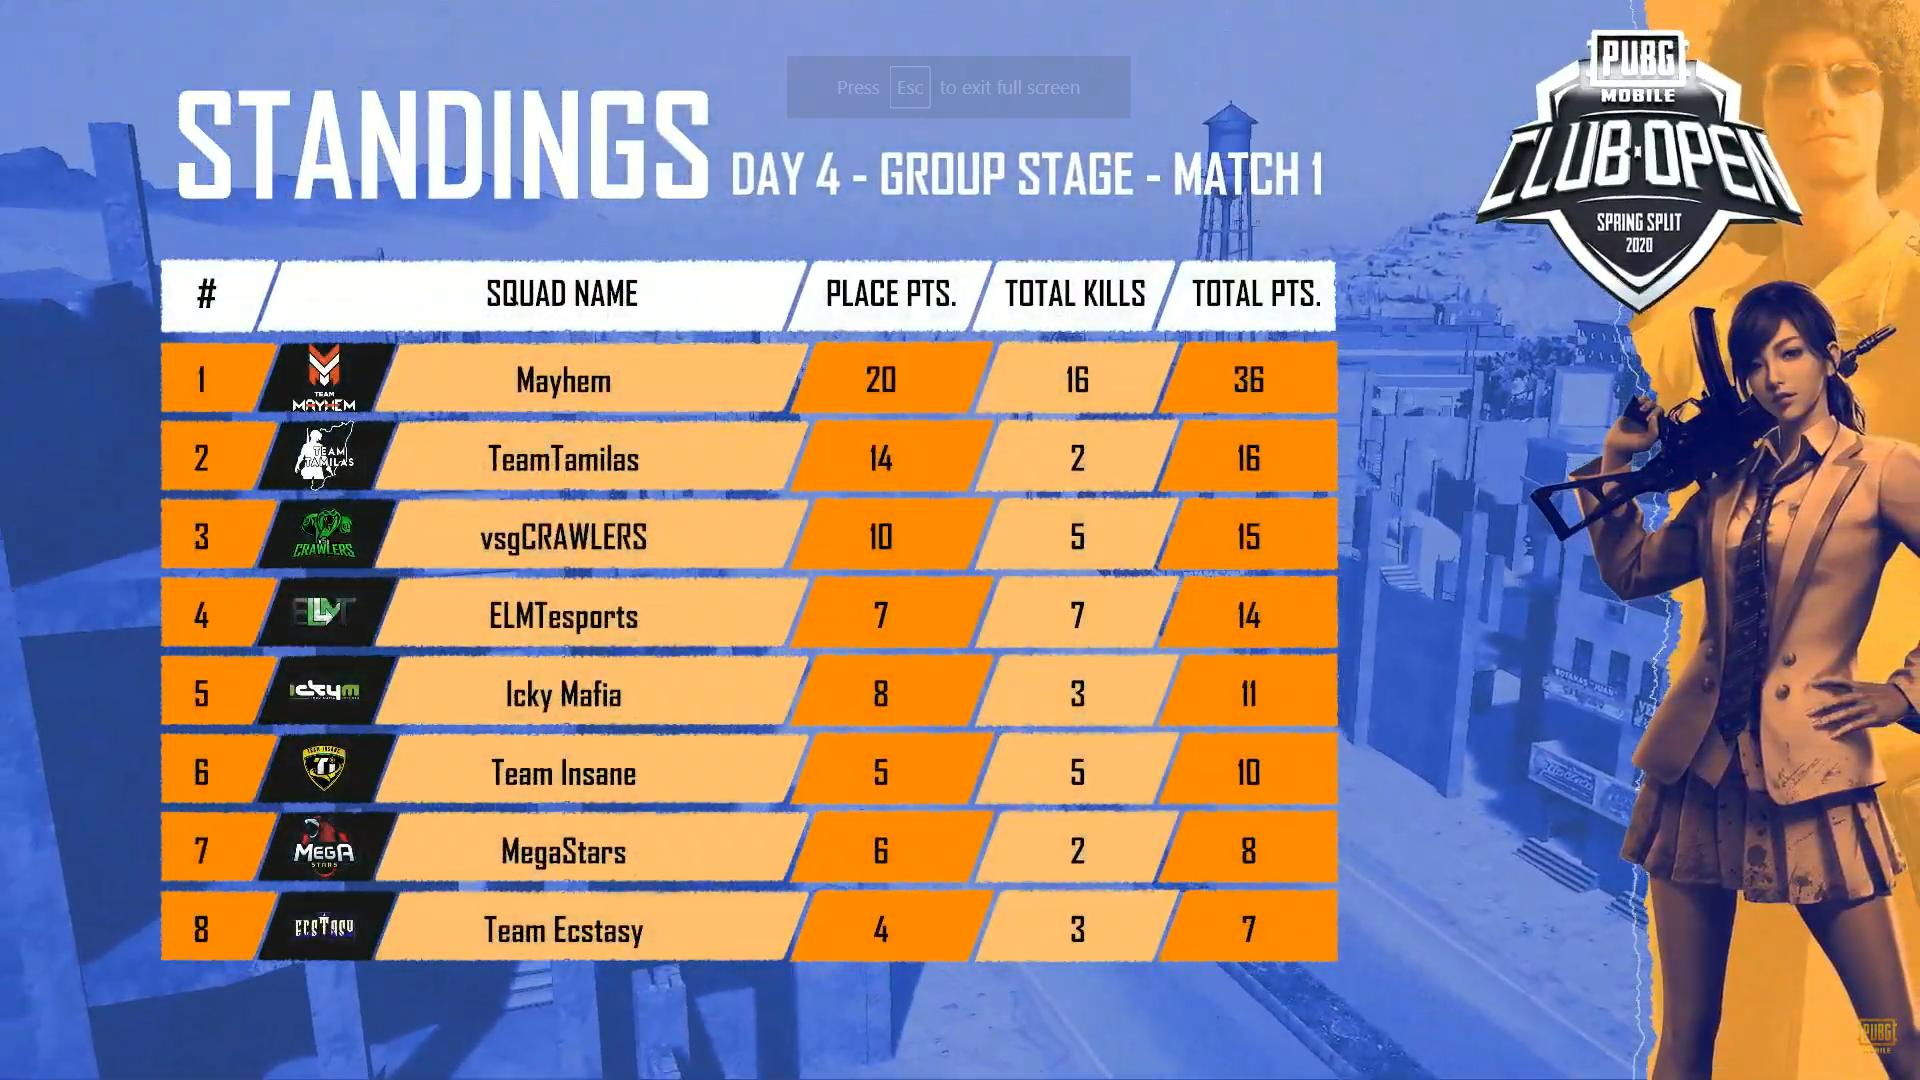 Match standing of Game 1 of Day 4